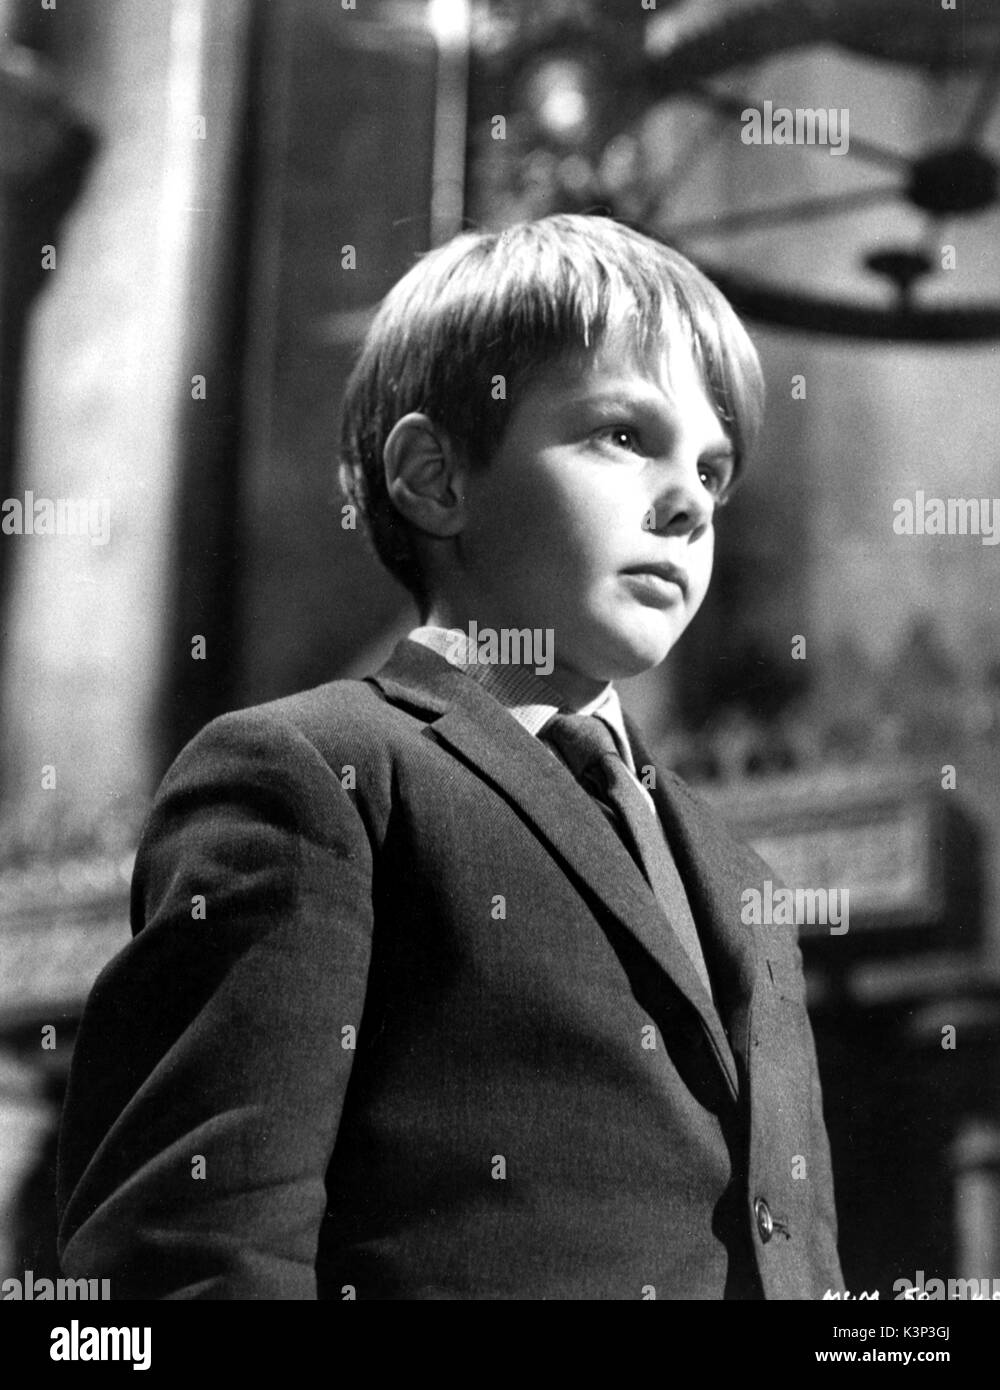 CHILDREN OF THE DAMNED [BR 1964] CLIVE POWELL     Date: 1964 - Stock Image